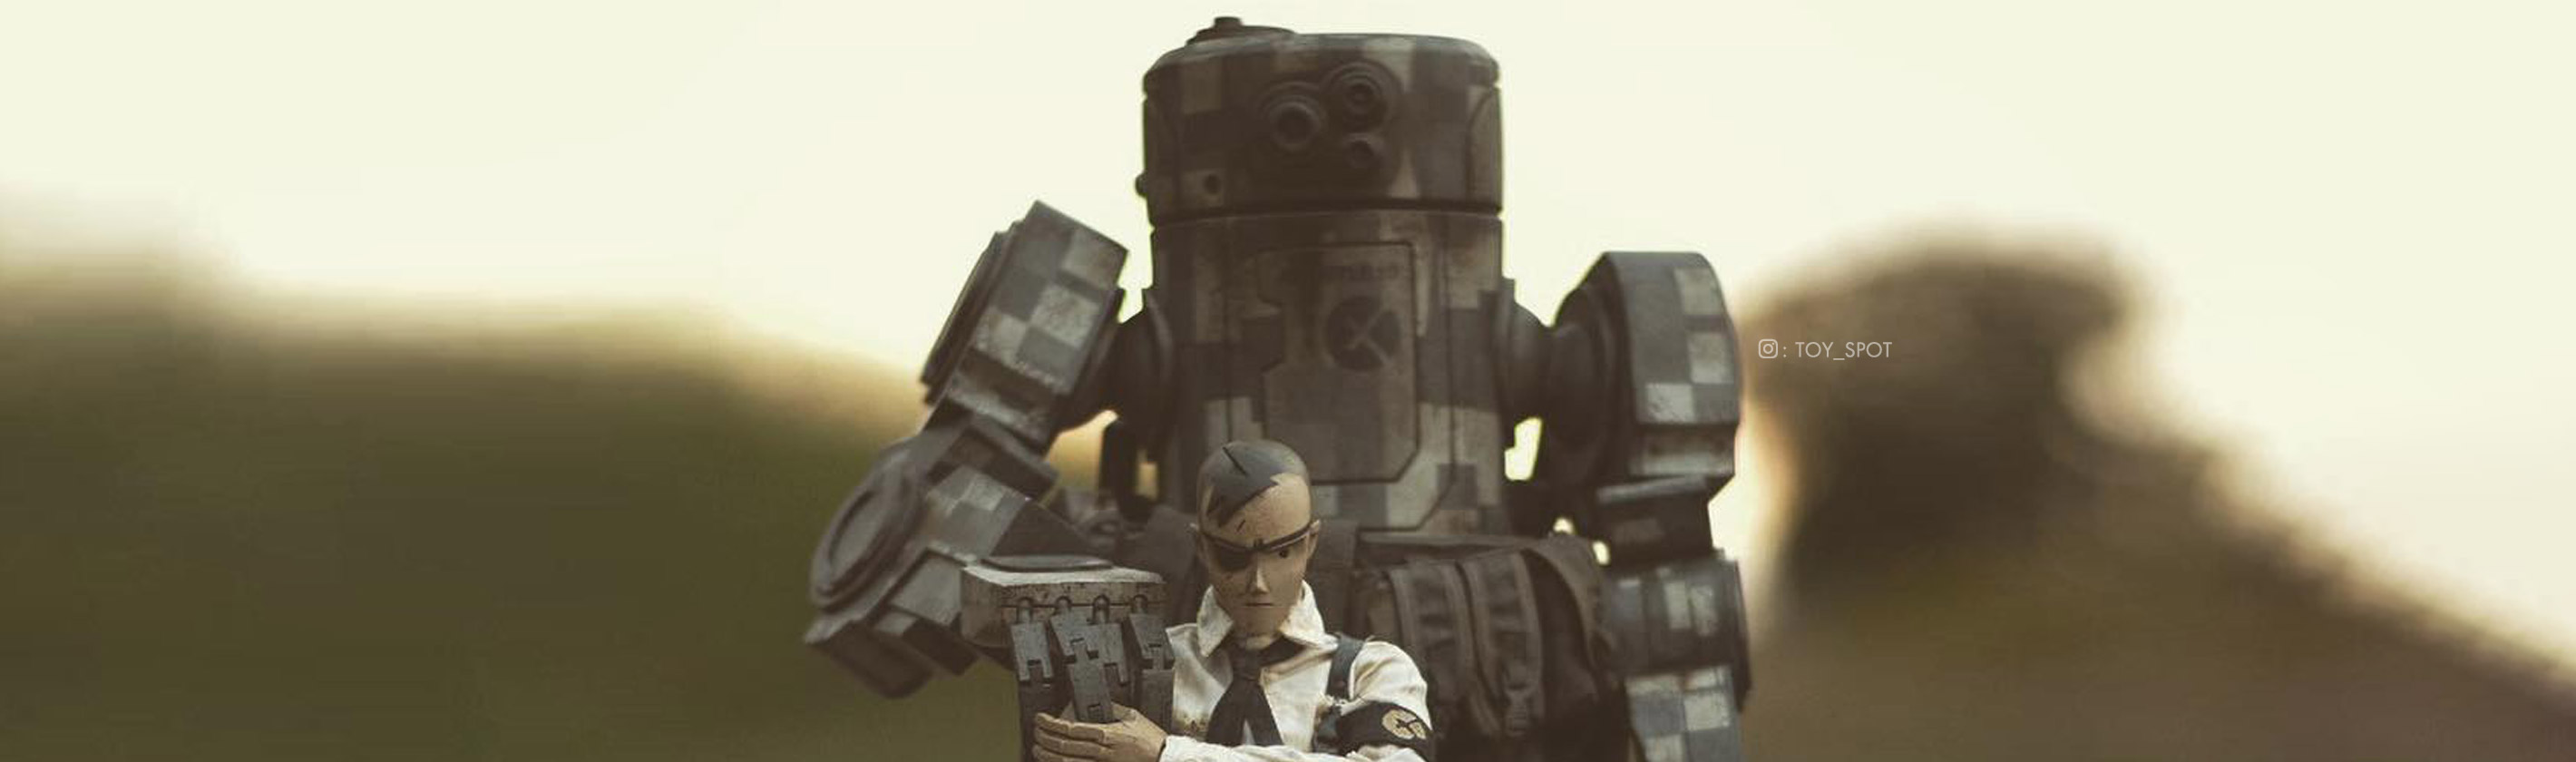 Caesar by Ashley Wood, photo by Toy_Spot via instagram